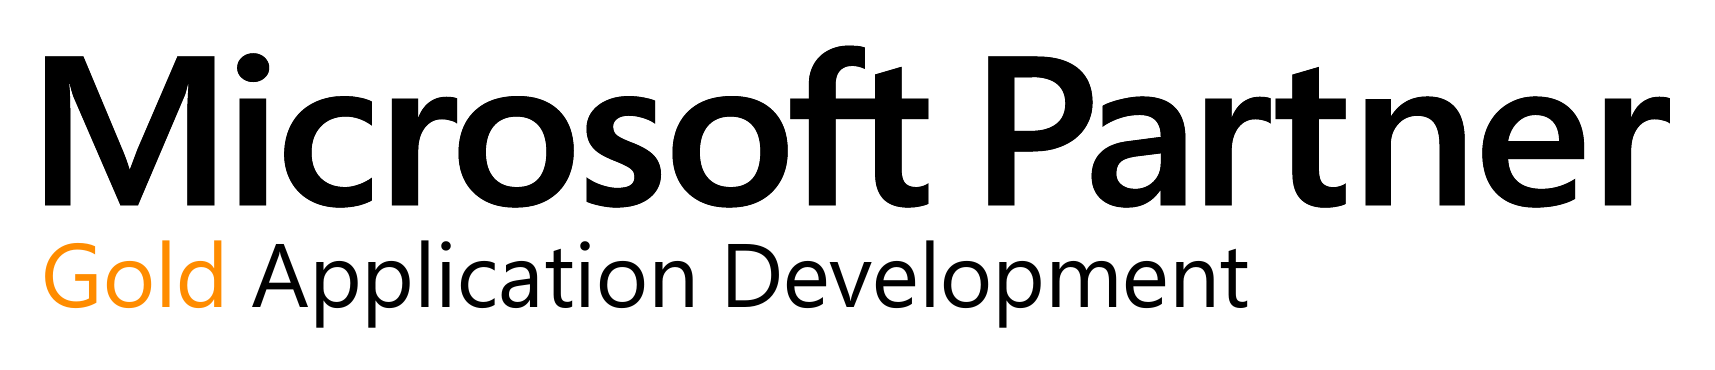 Microsoft Partner - Gold Application Development